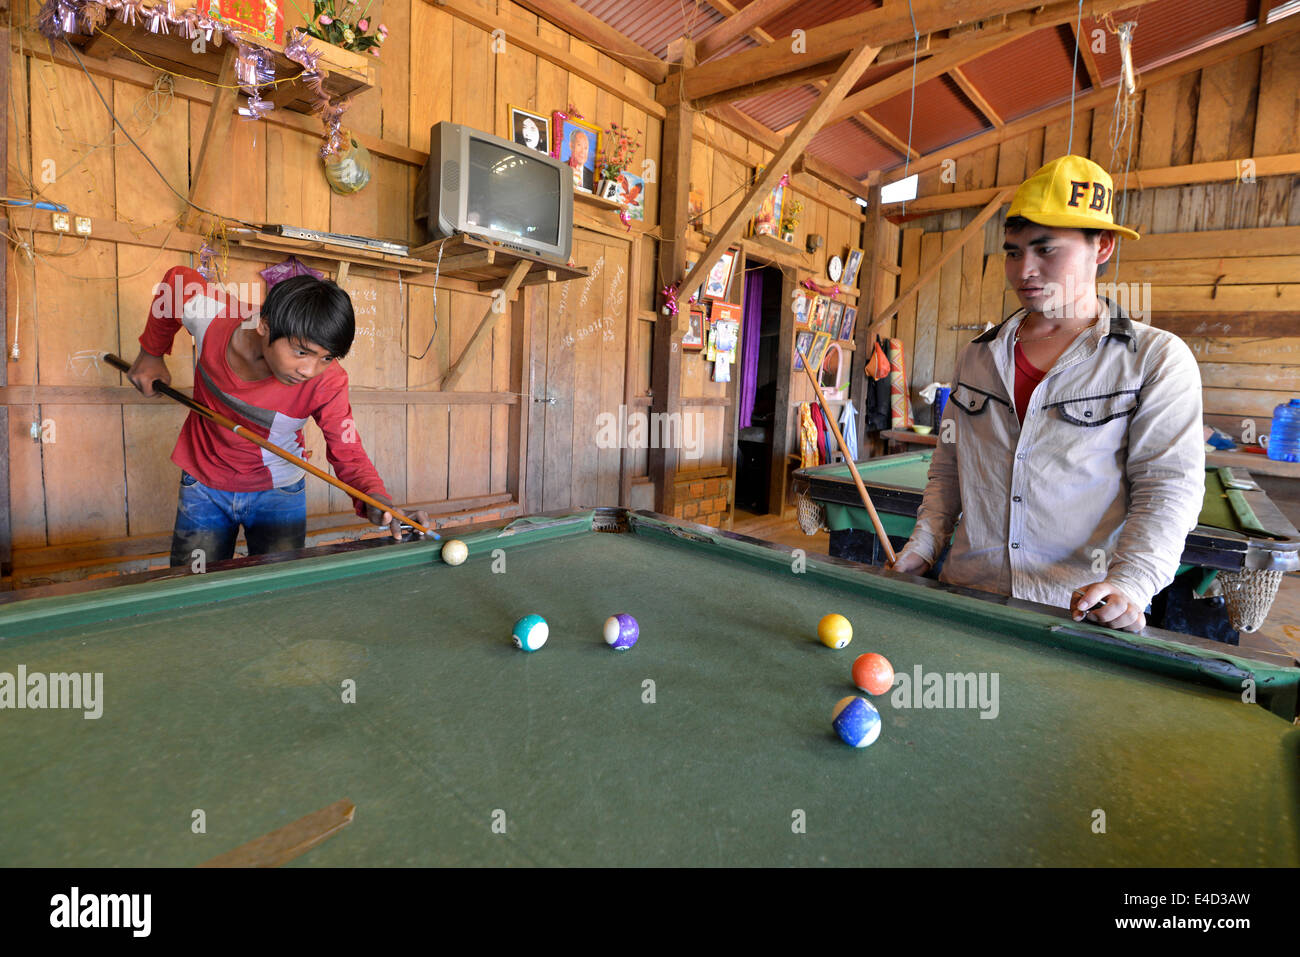 Two Cambodian youths playing pool billiards in a simple wooden hut, Banlung, Ratanakiri Province, Cambodia - Stock Image